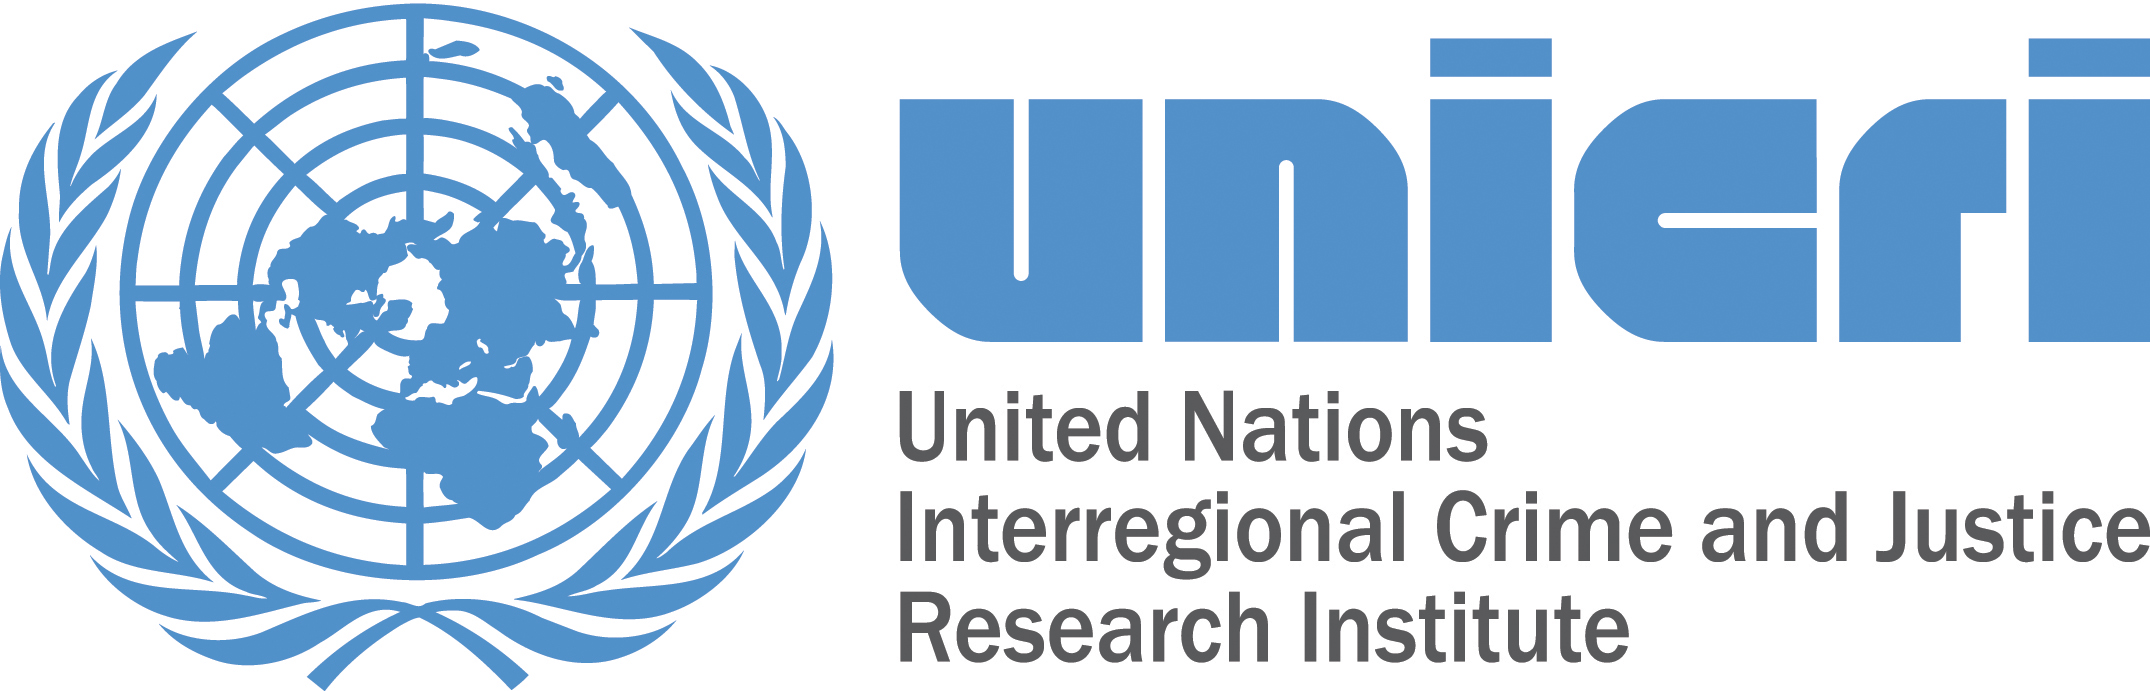 Link for United Nations Interregional Crime and Justice Research Institute